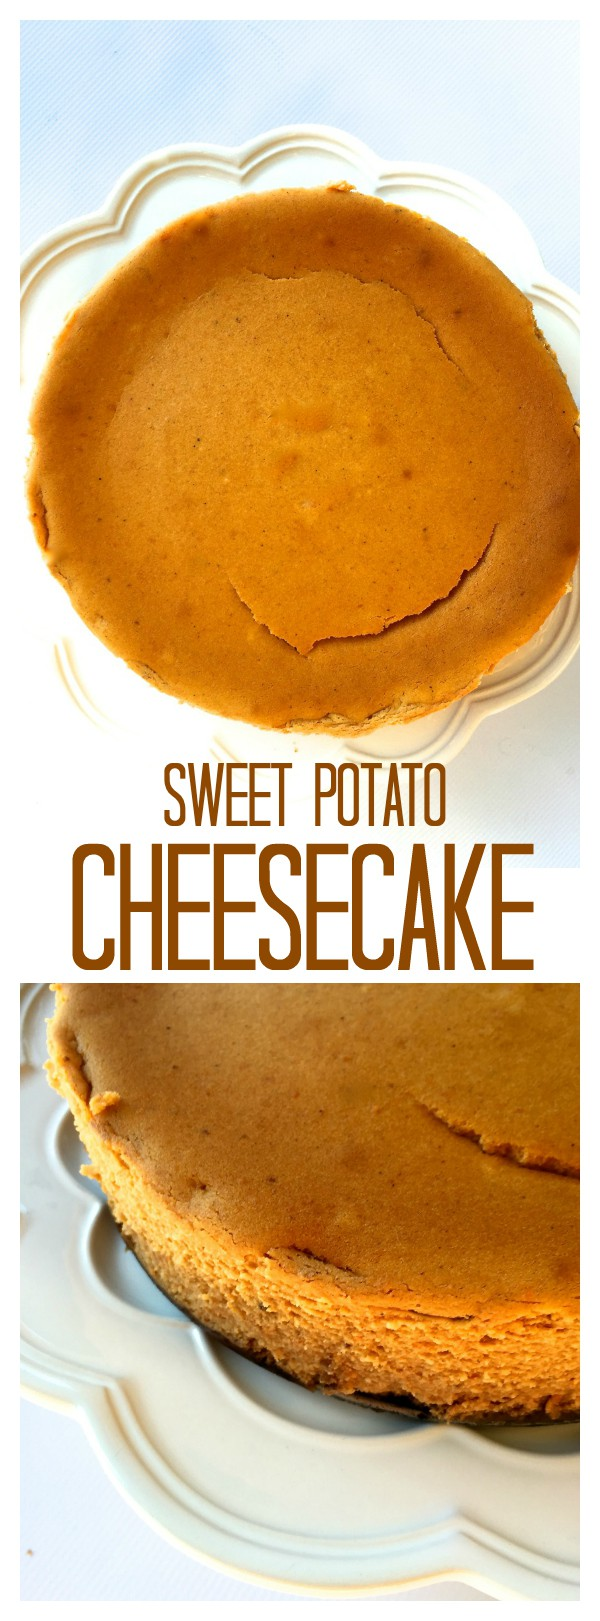 Make ahead this Sweet Potato Cheesecake for easy entertaining!